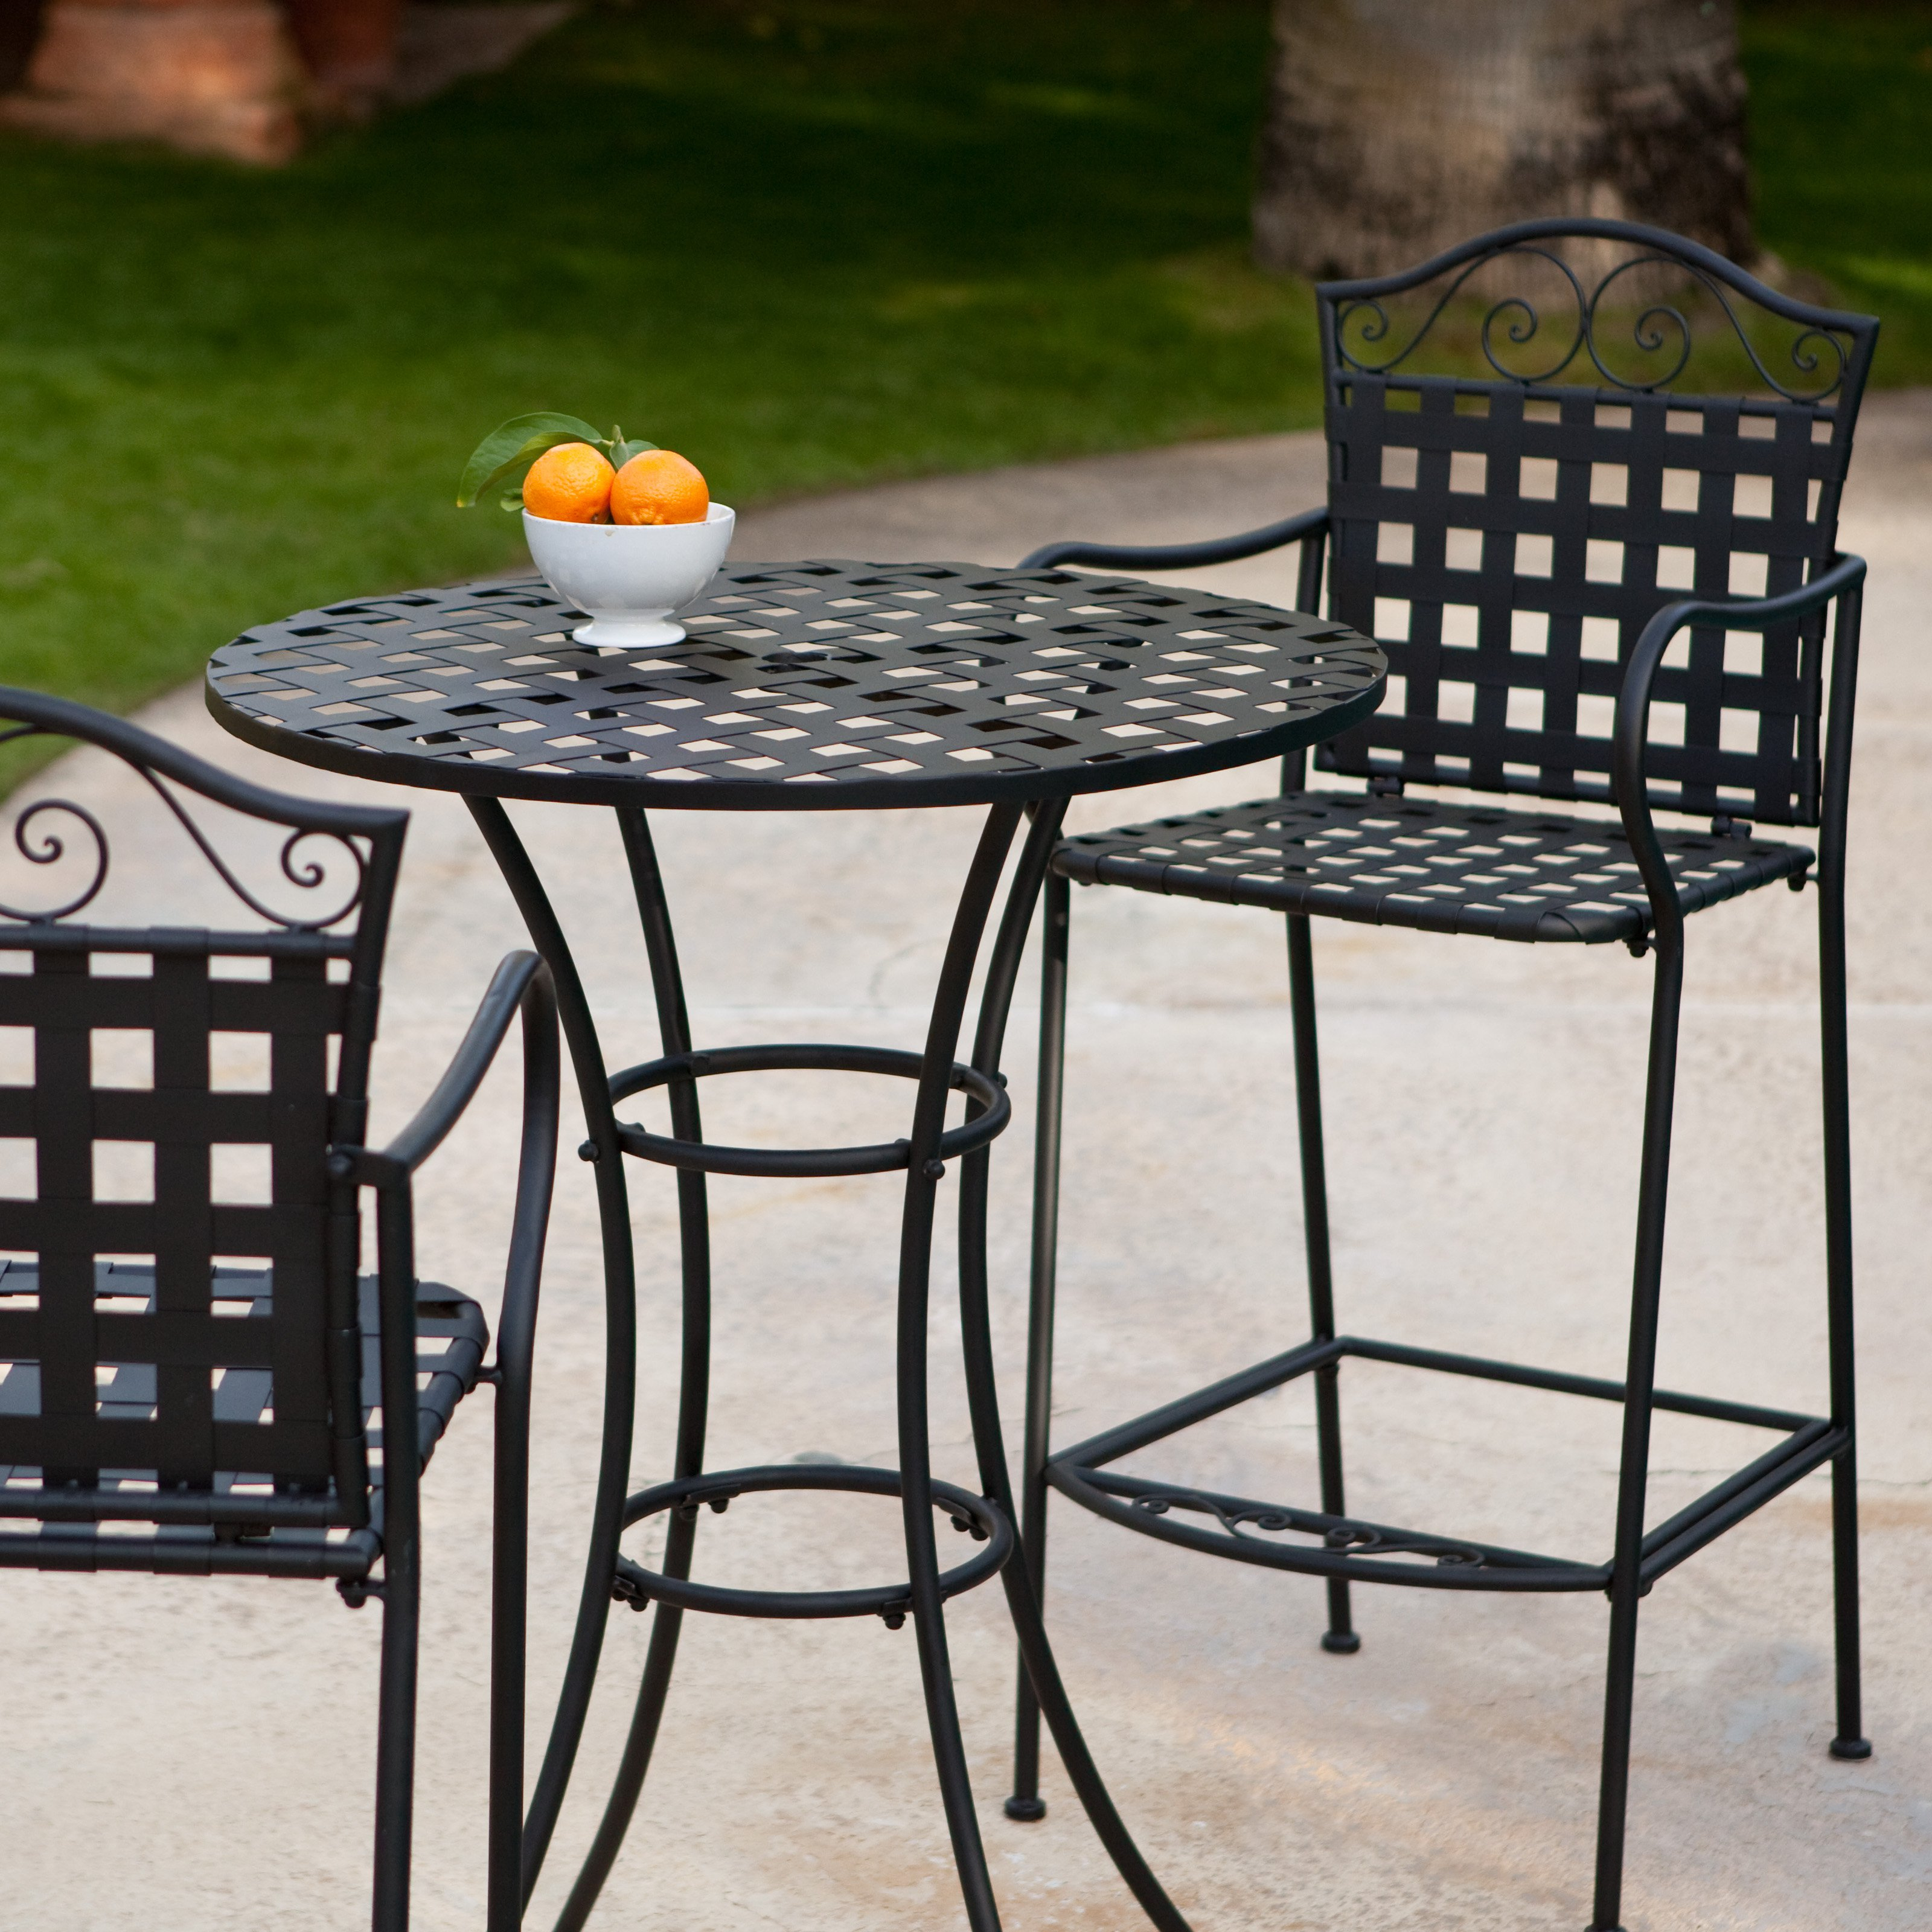 Belham Living Wrought Iron Bar Height Bistro Set by Woodard by